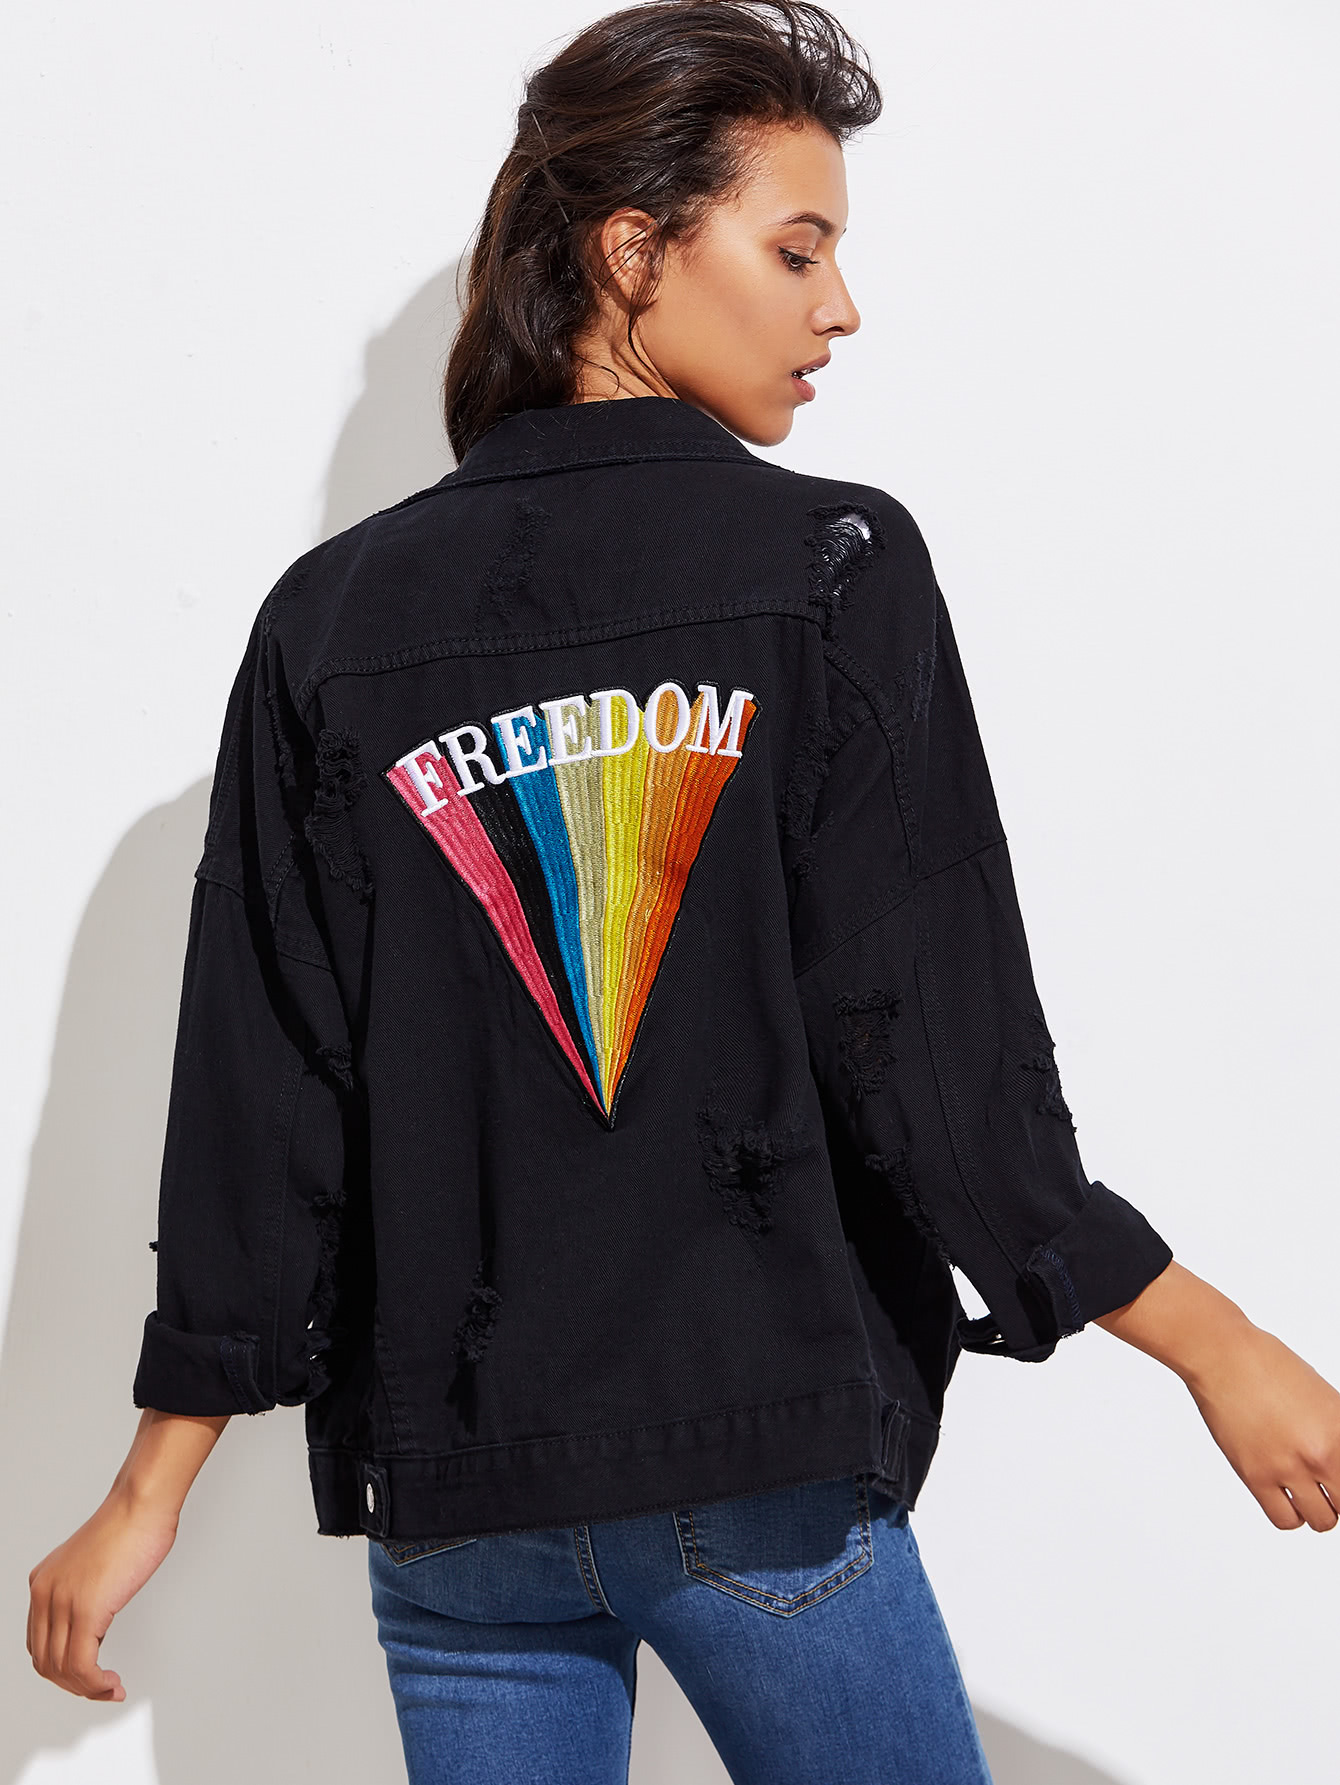 Rainbow Embroidered Back Ripped Denim Jacket philips d2301b 51